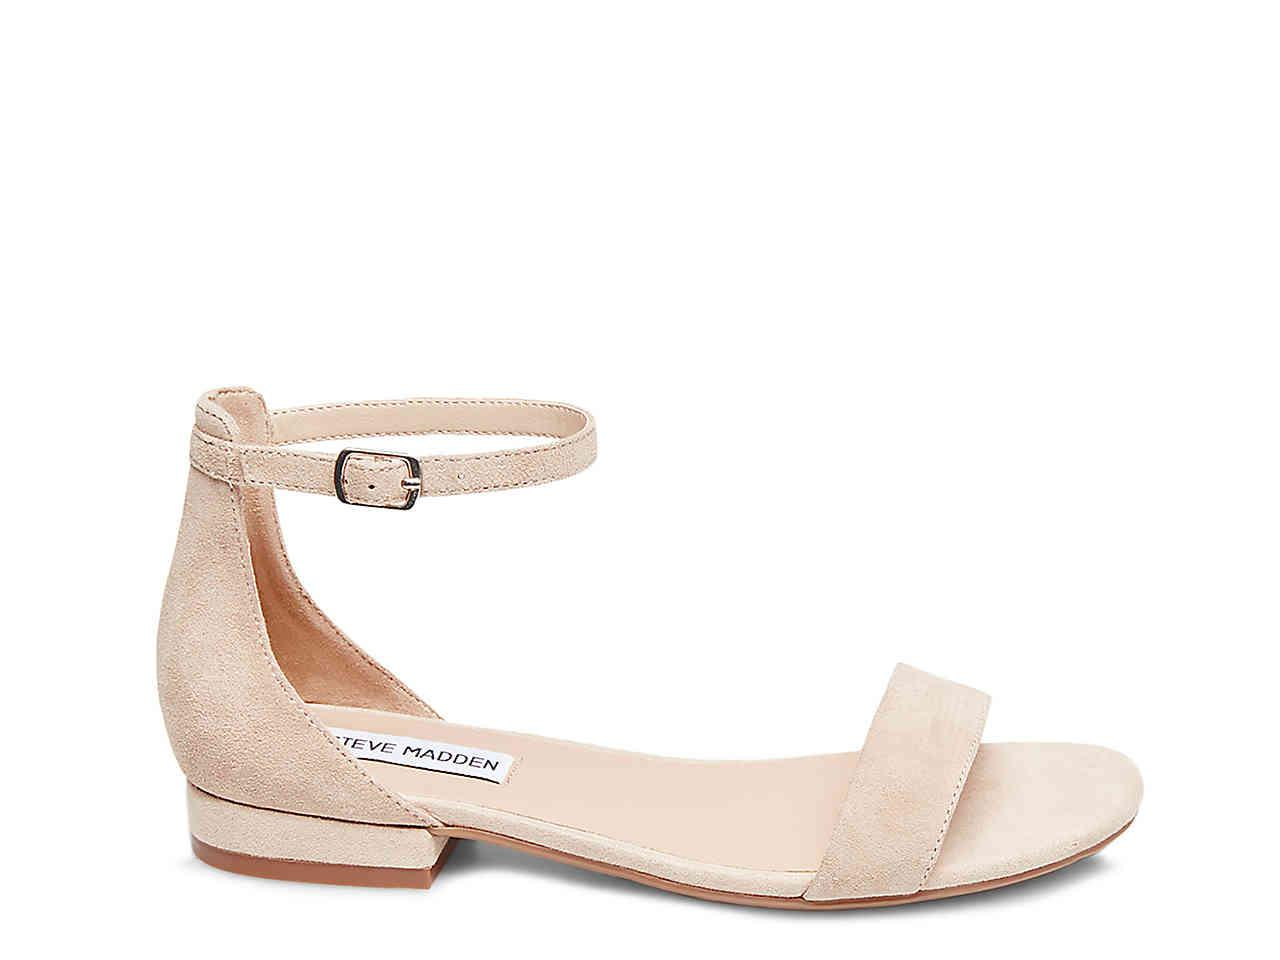 96fc111023a Lyst - Steve Madden Lamp Flat Sandal in Natural